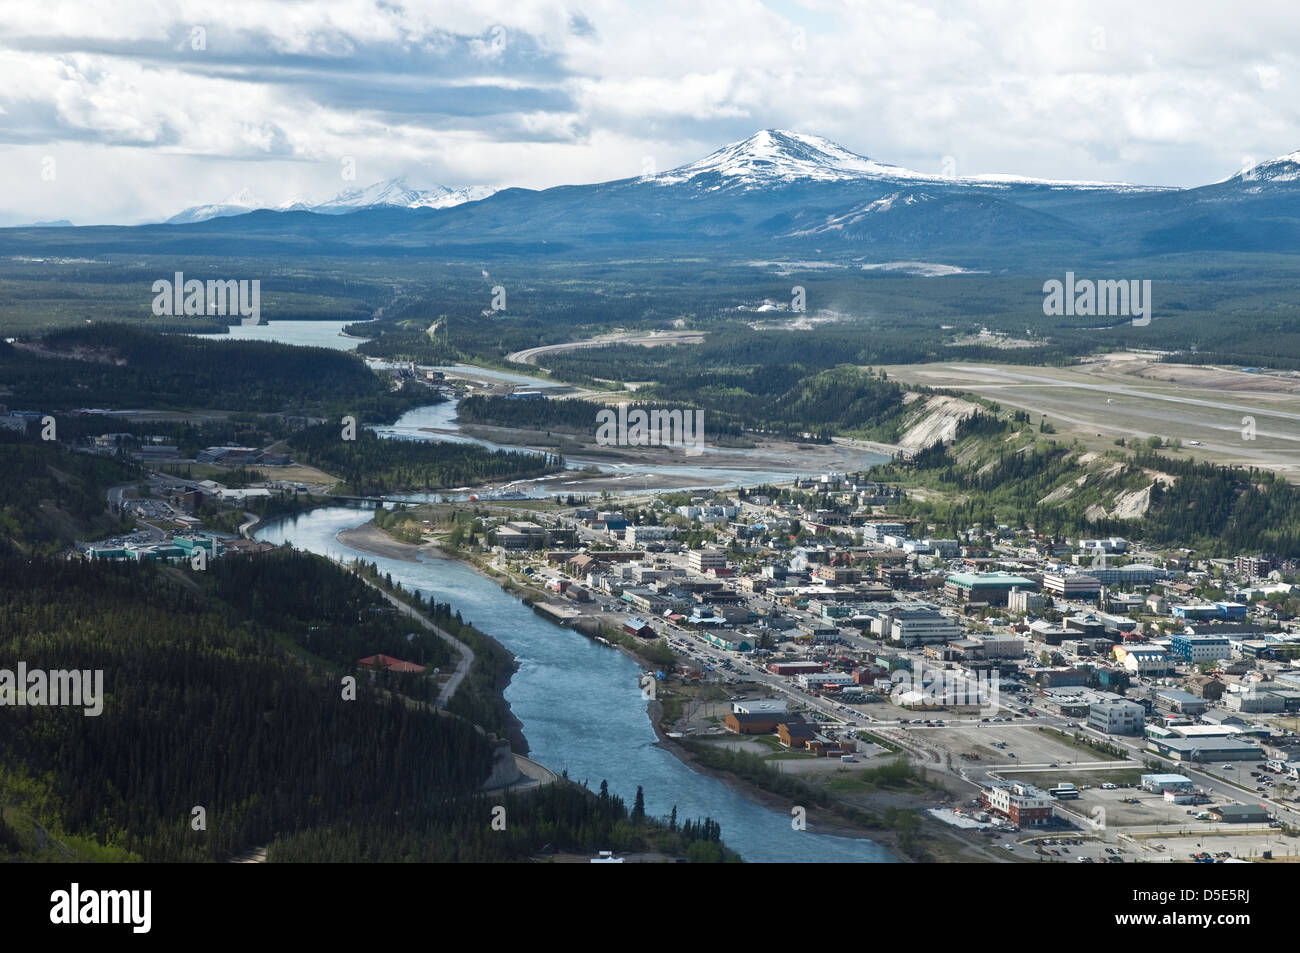 whitehorse chatrooms Whitehorse chat: welcome to chat whitehorse, the list of chat hour members in whitehorse chatters listed below are chat hour members who live in whitehorse.